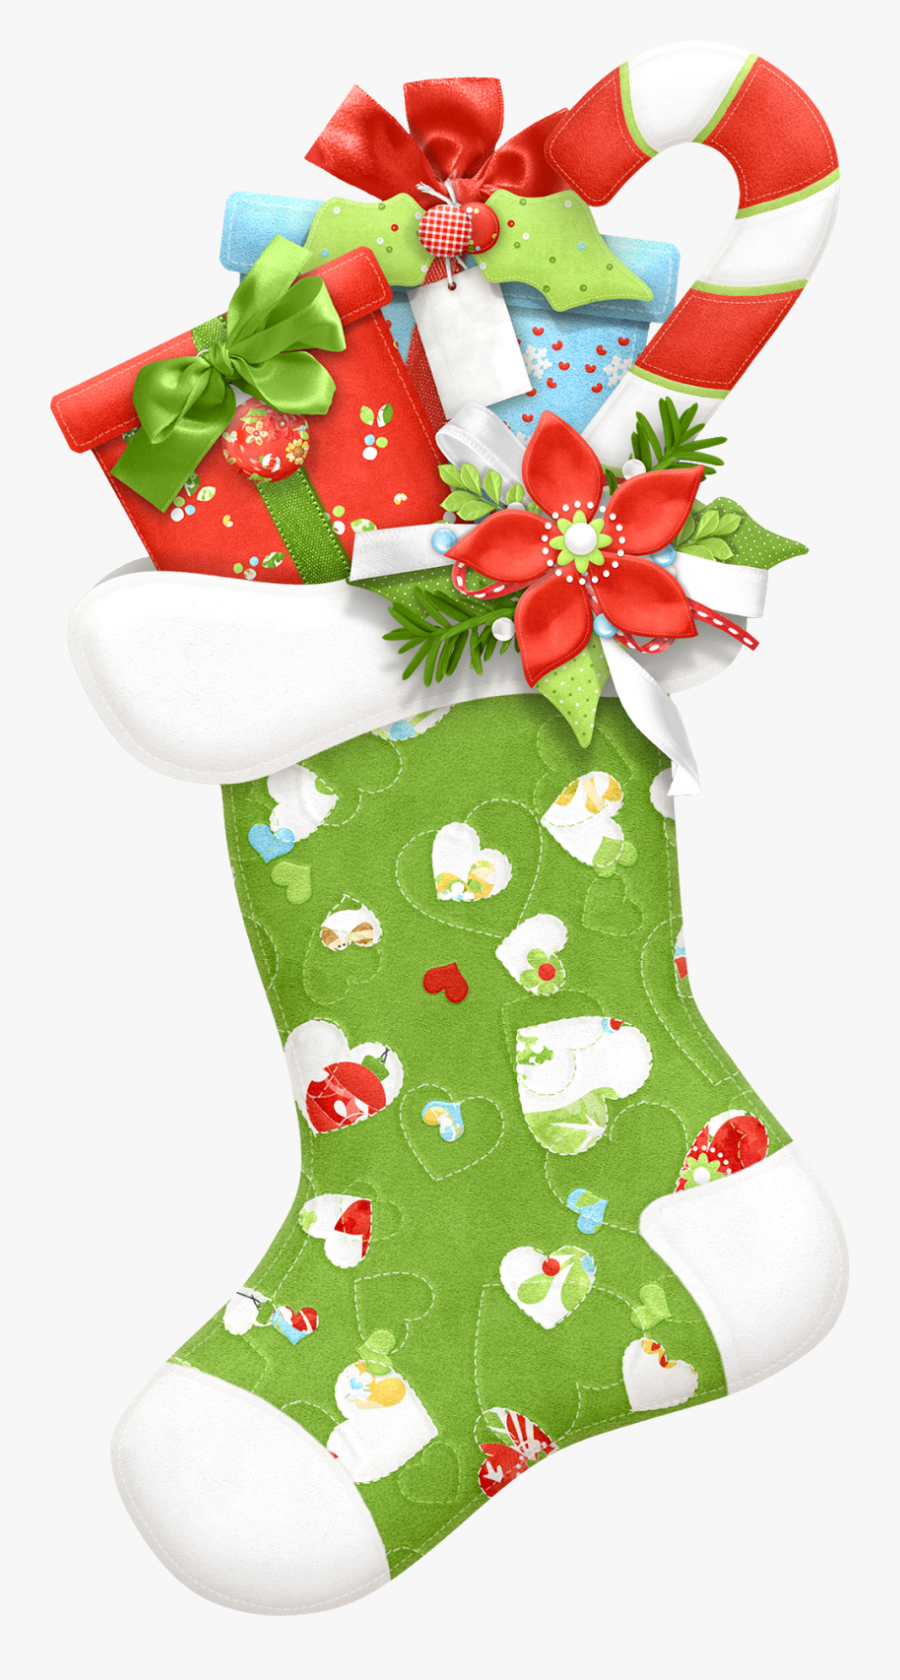 Christmas Stocking Clip Art - Christmas Stocking Clipart , Free Transparent Clipart - ClipartKey